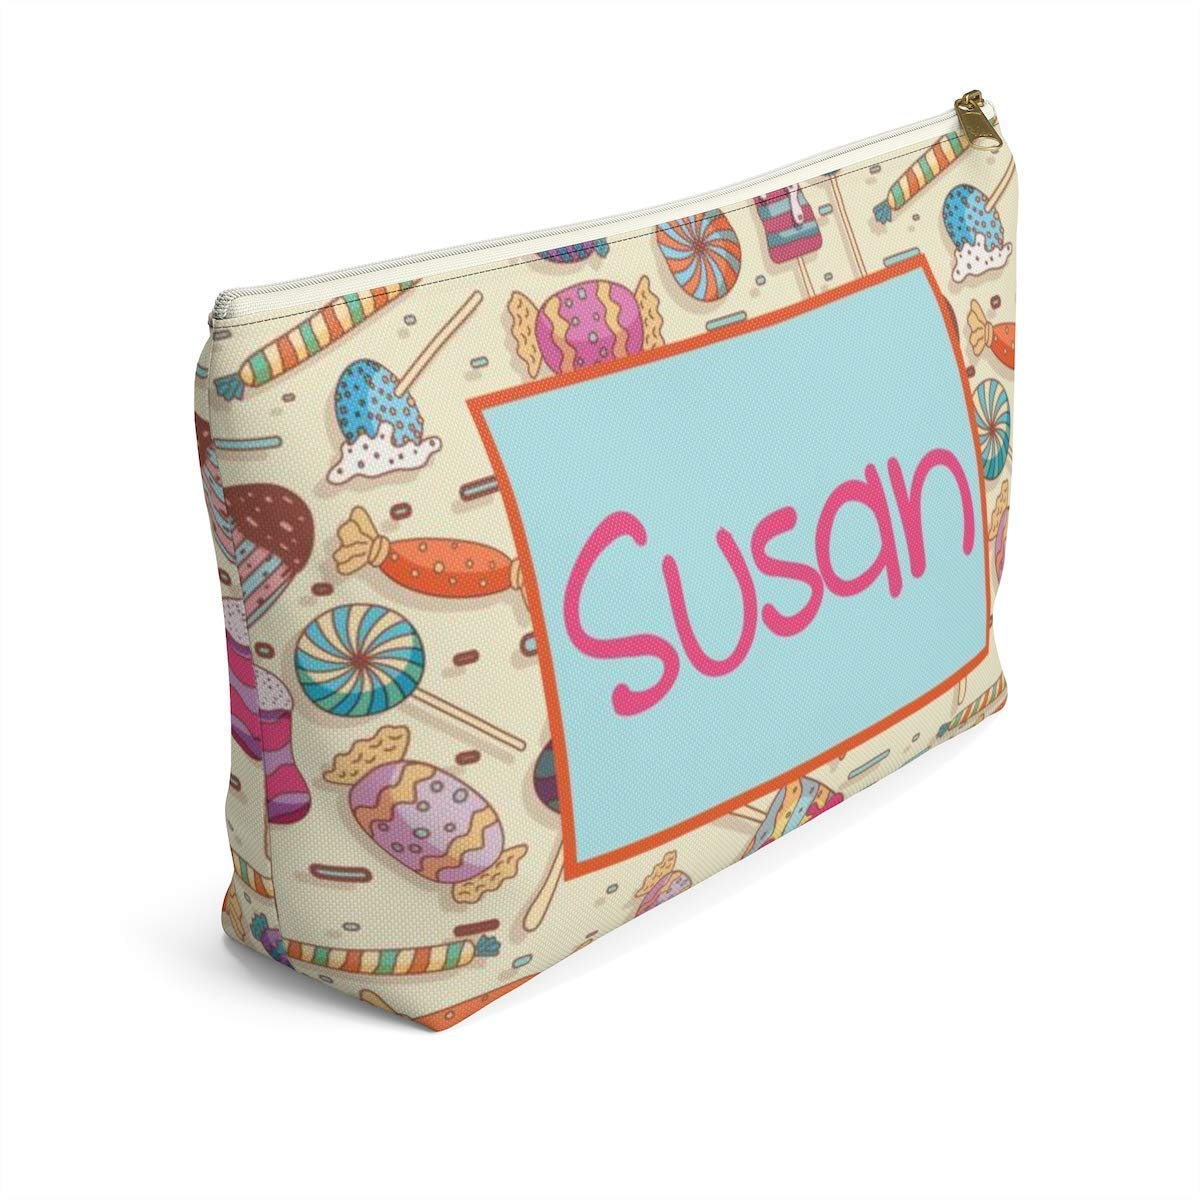 Personalized Cosmetic Bag Opening large favorite release sale Travel Accessory Pouch u Make